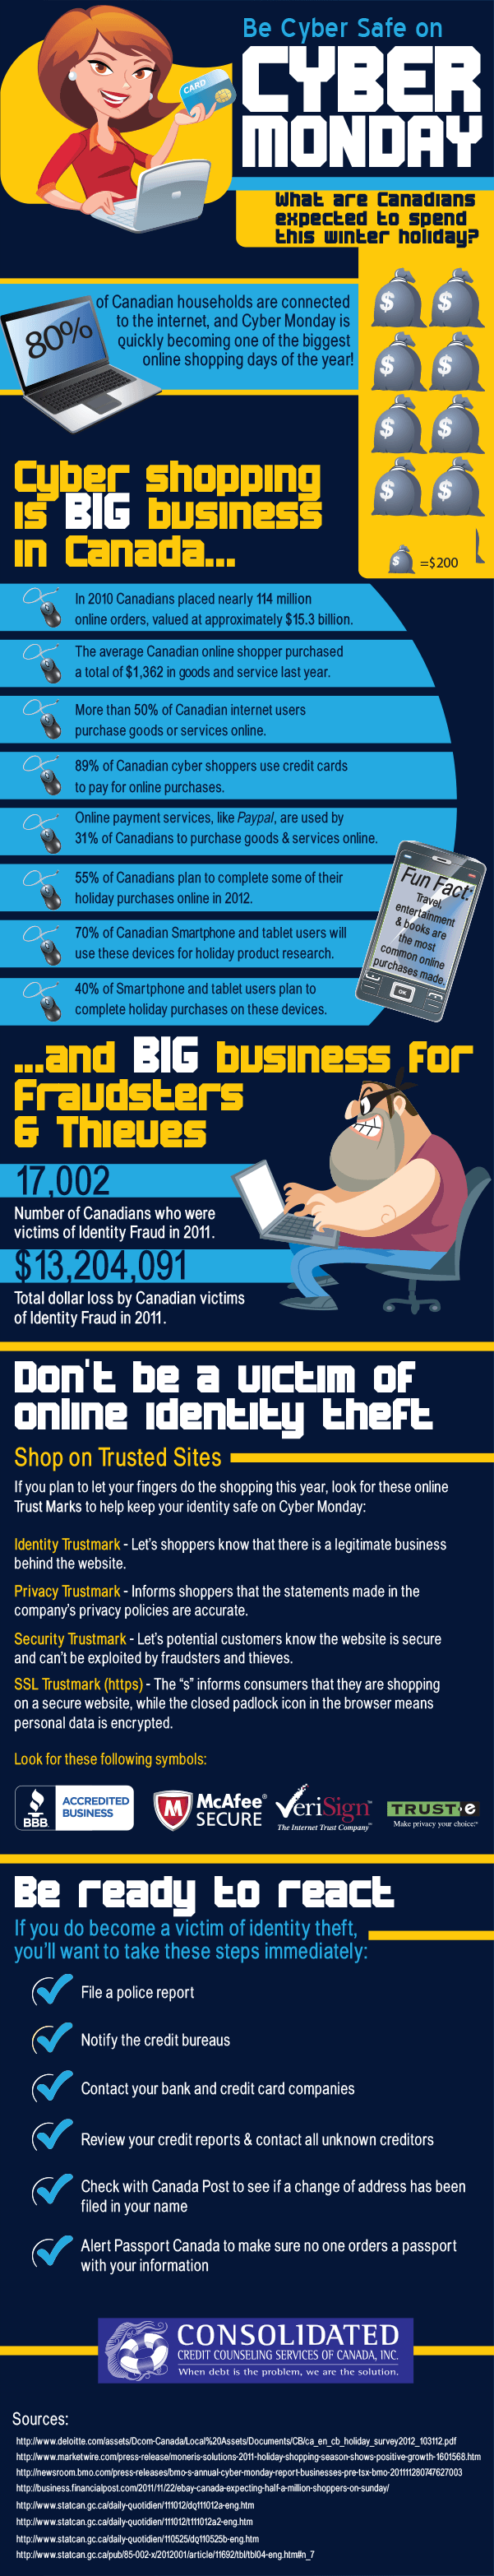 Infographic on Identity Theft: Be Cyber Safe on Cyber Monday